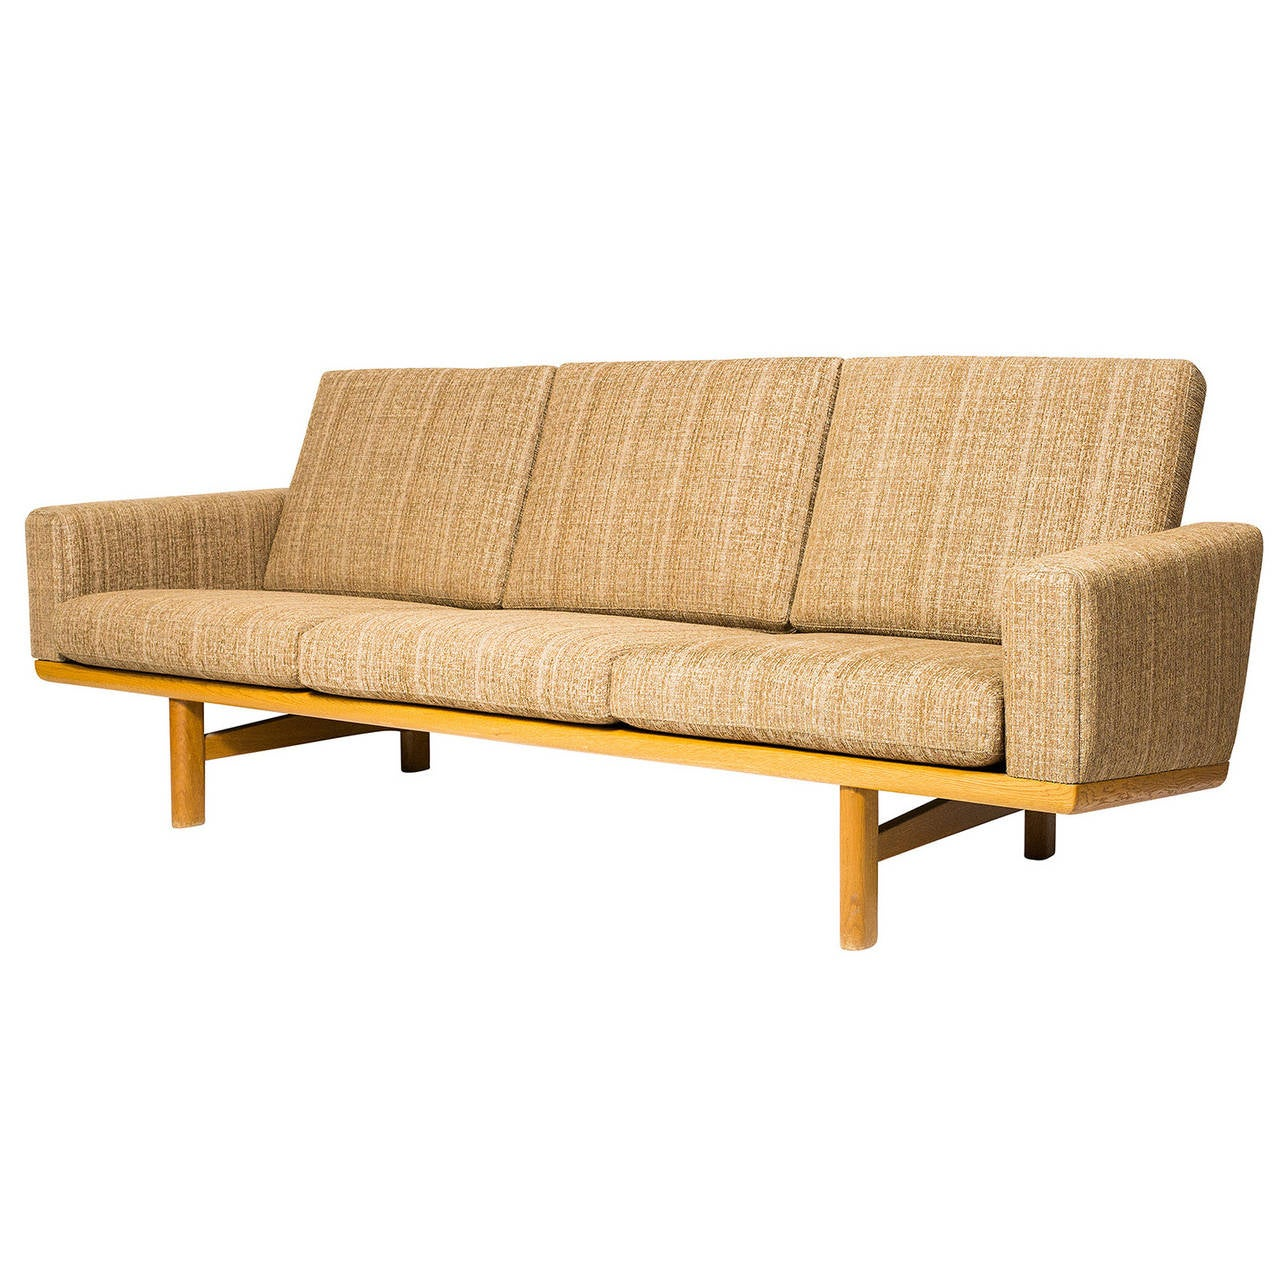 hans wegner ge 236 sofa for sale at 1stdibs. Black Bedroom Furniture Sets. Home Design Ideas